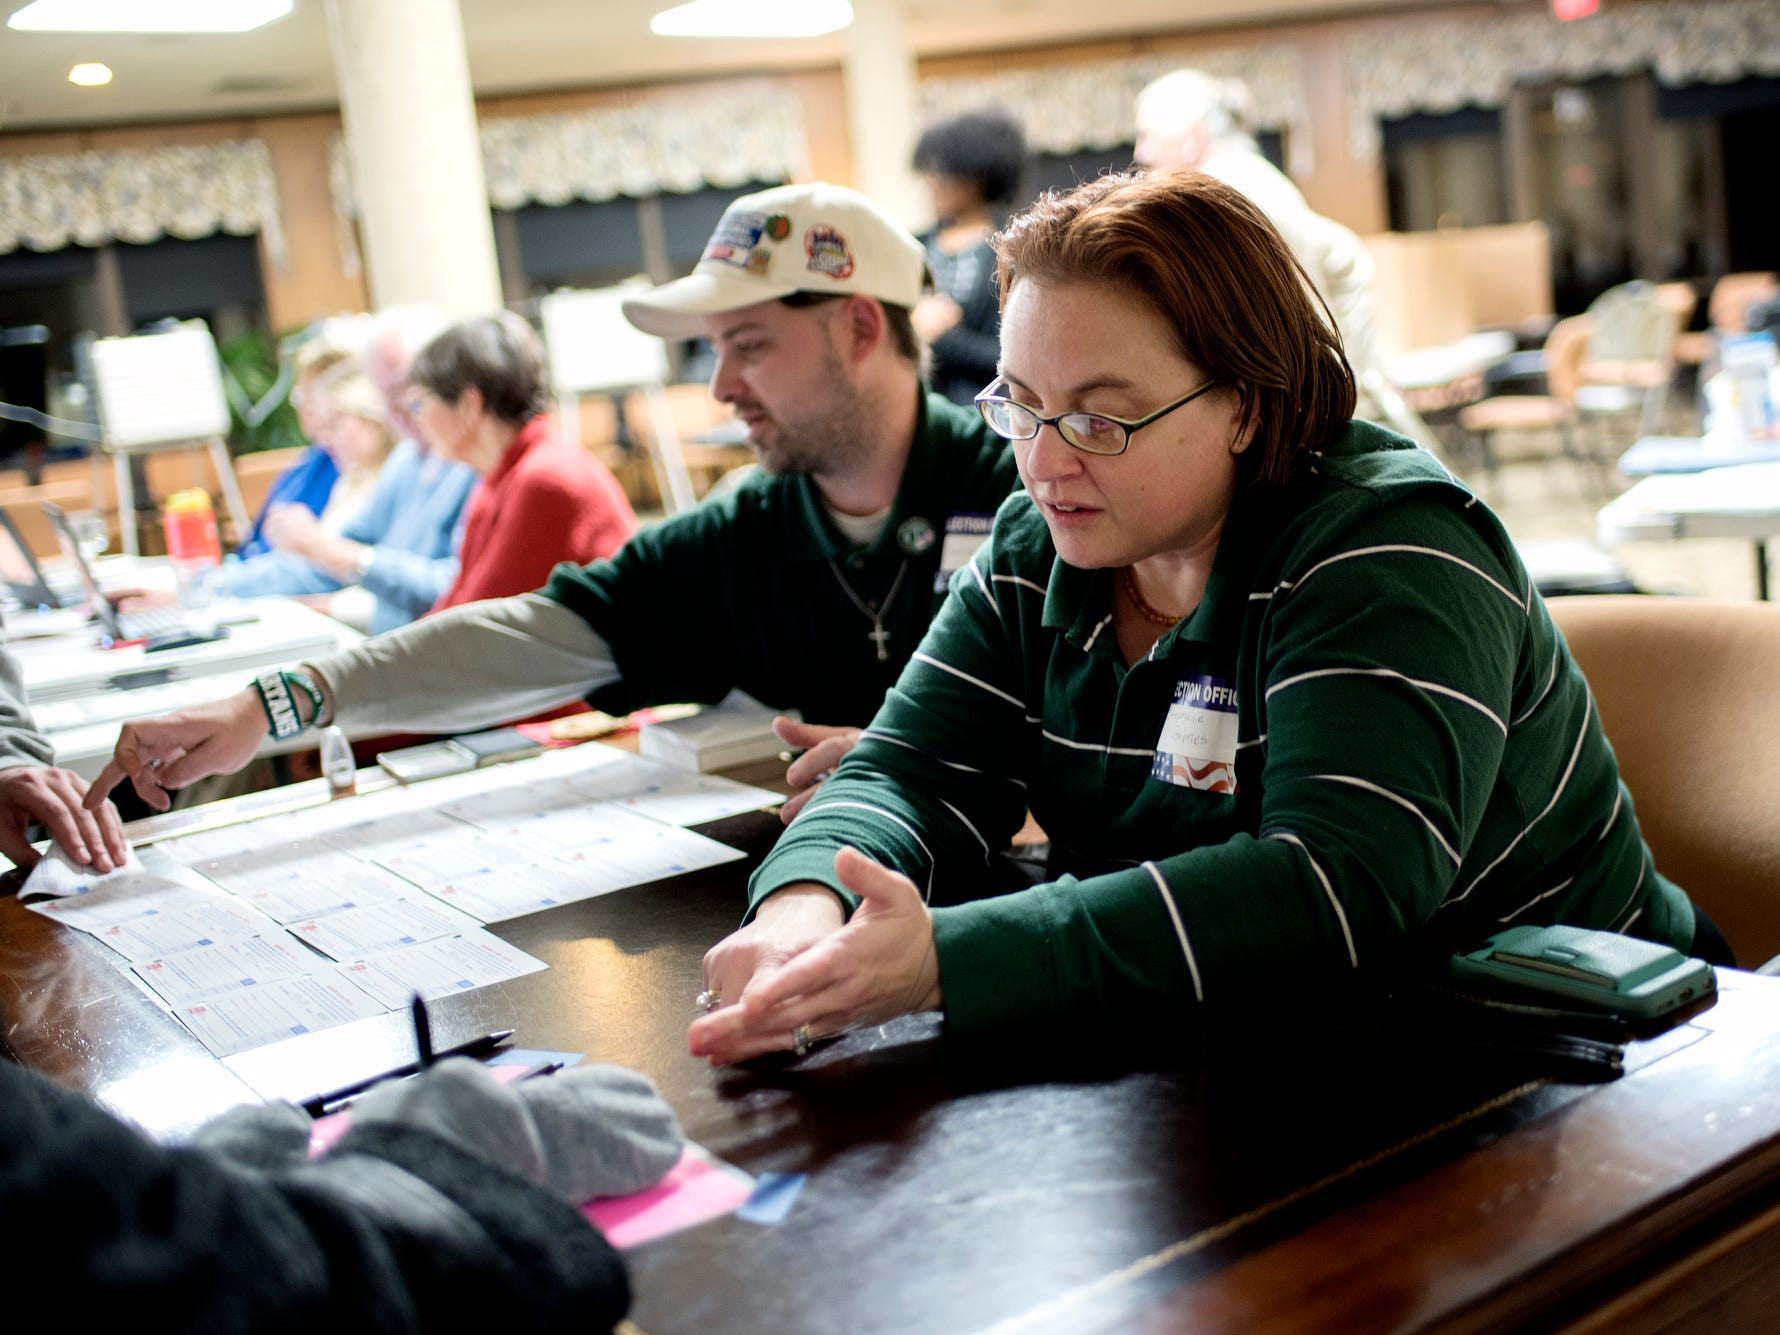 Poll worker Stephanie Grimes, right, and her husband Ben help voters get started on Tuesday, Nov. 6, 2018, at the polling place inside Burcham Hills retirement community in East Lansing.